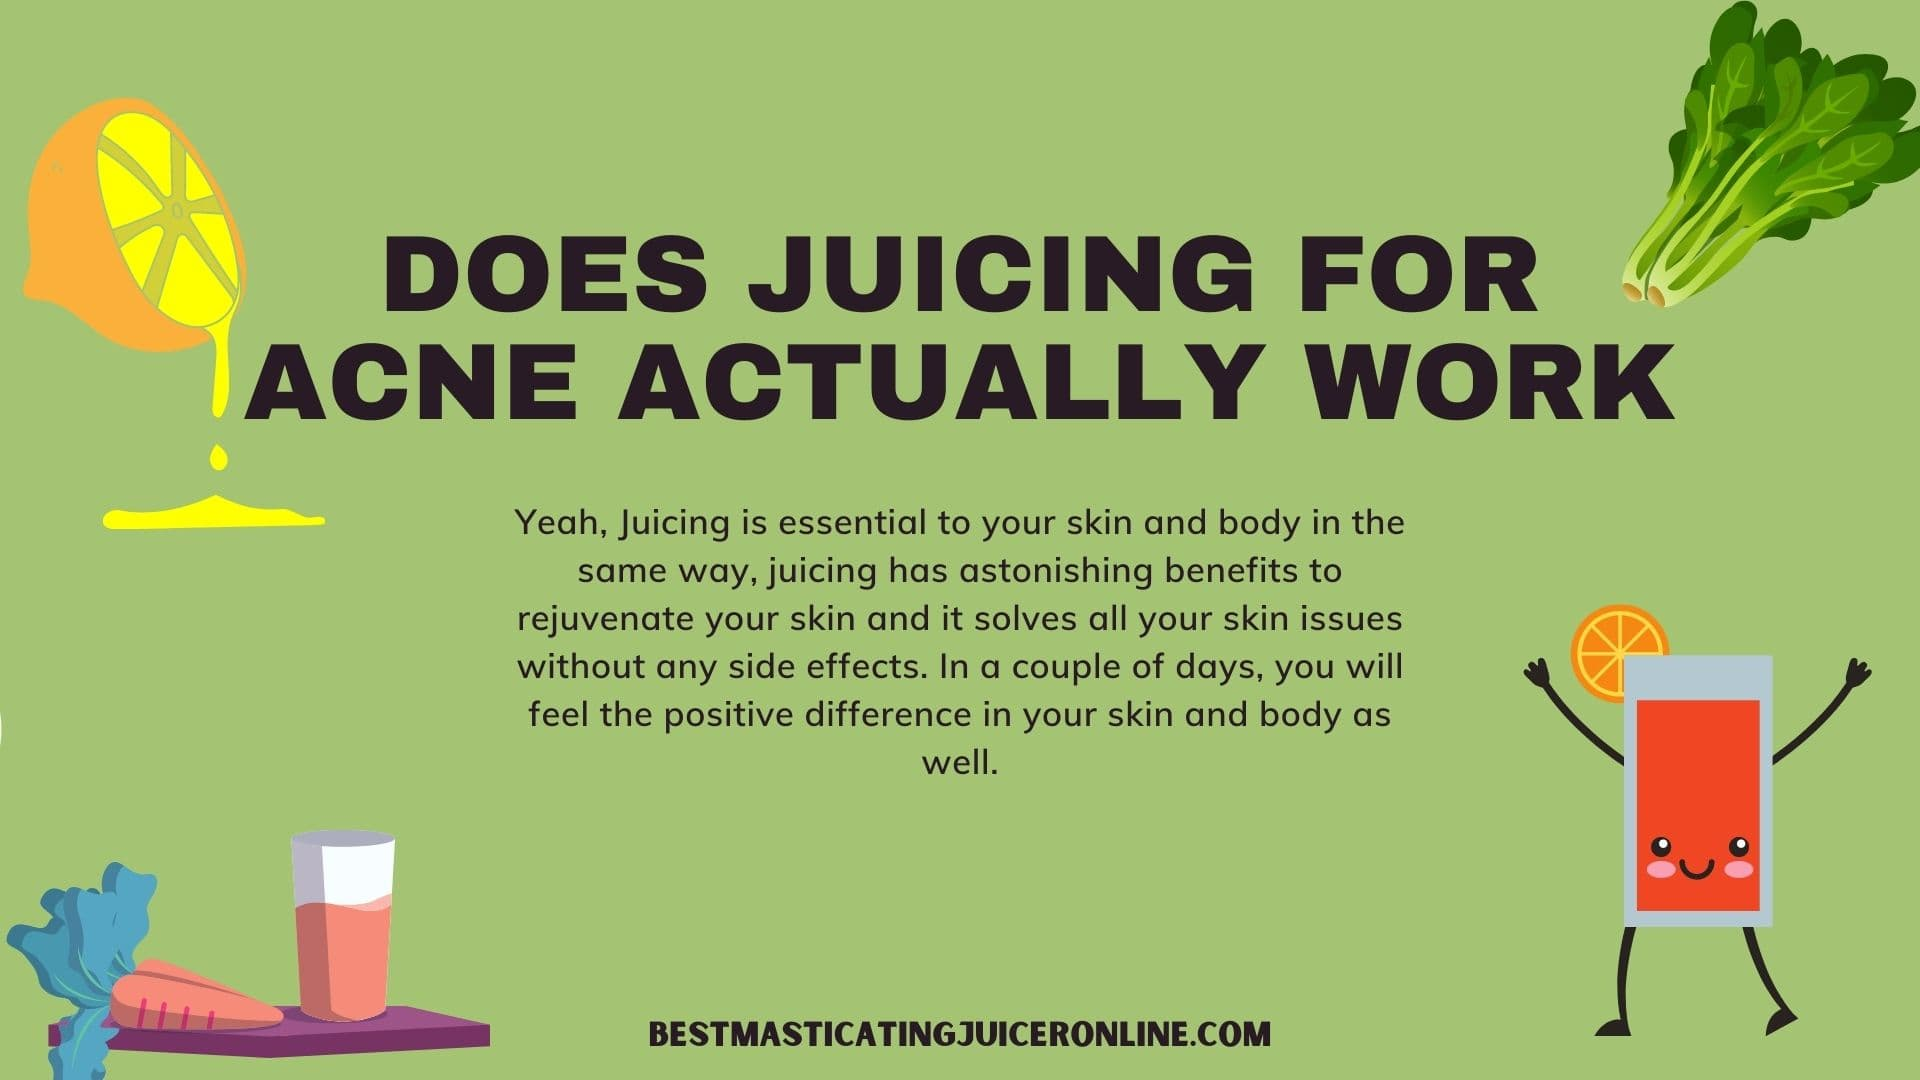 Does Juicing for Acne Actually Work